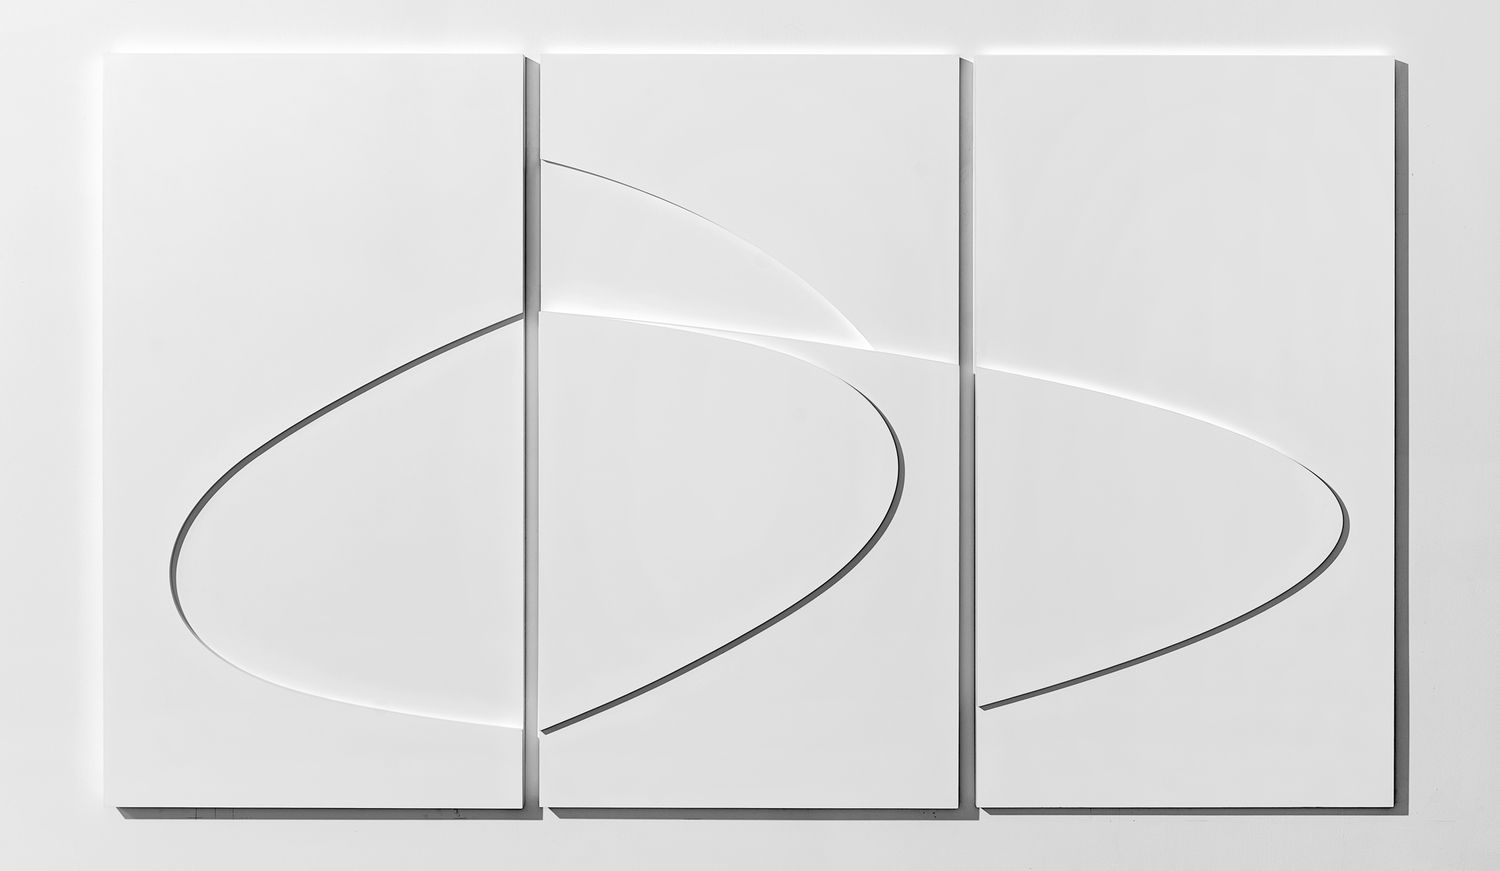 Untitled (Double Loop), 2013. Acrylic Gesso on MDF, 40 x